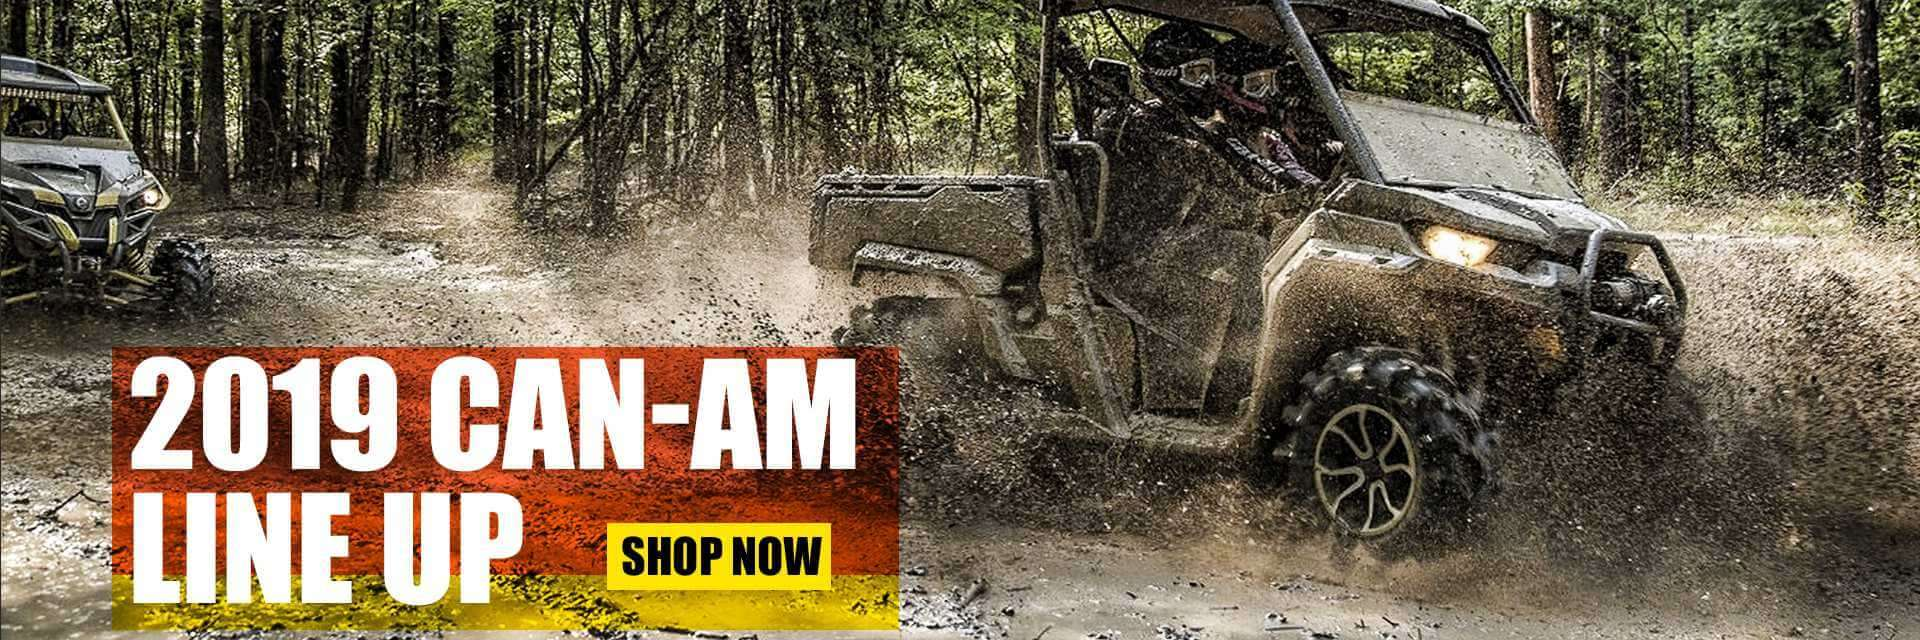 Cooper's Sales & Service | Can-Am